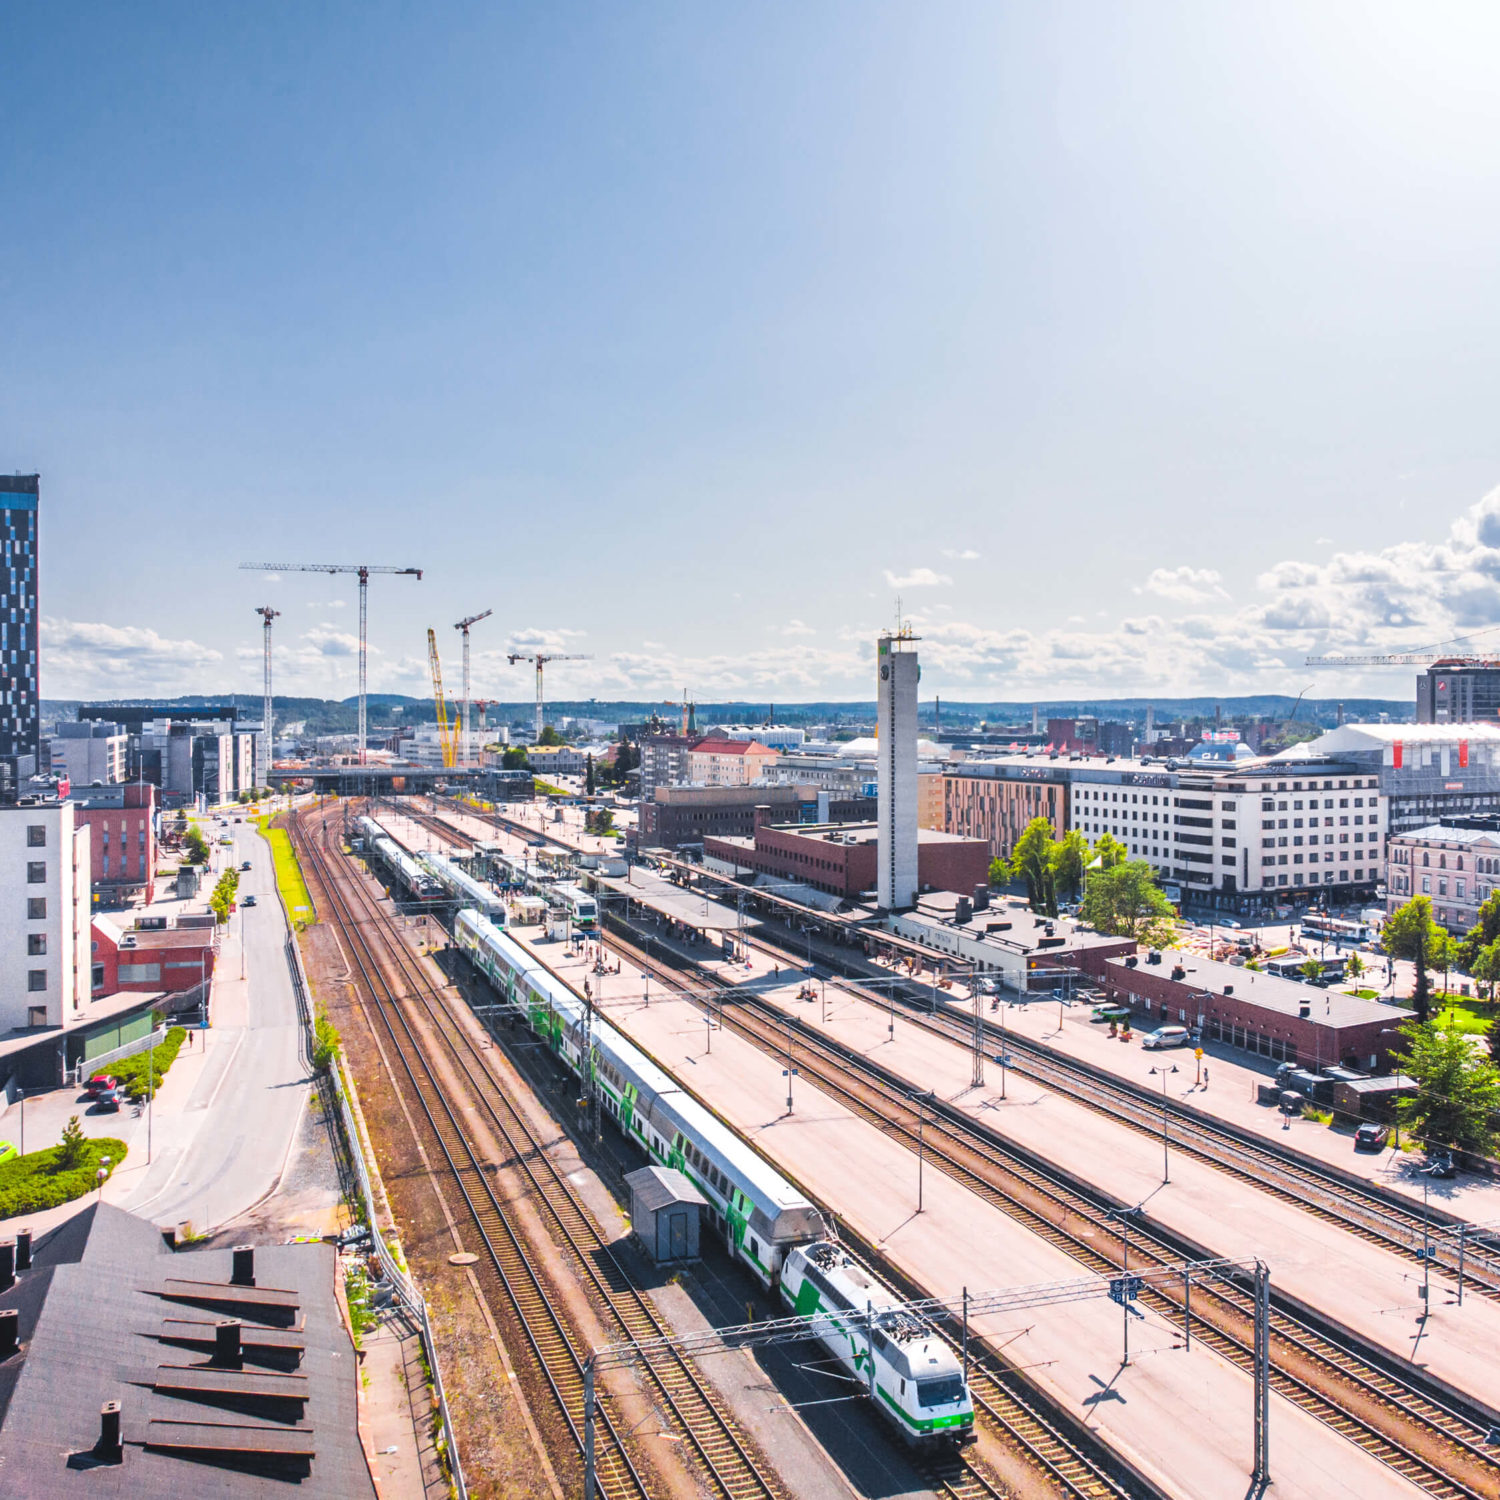 Visio Visit Tampere Train Station railway drone view Laura Vanzo 2